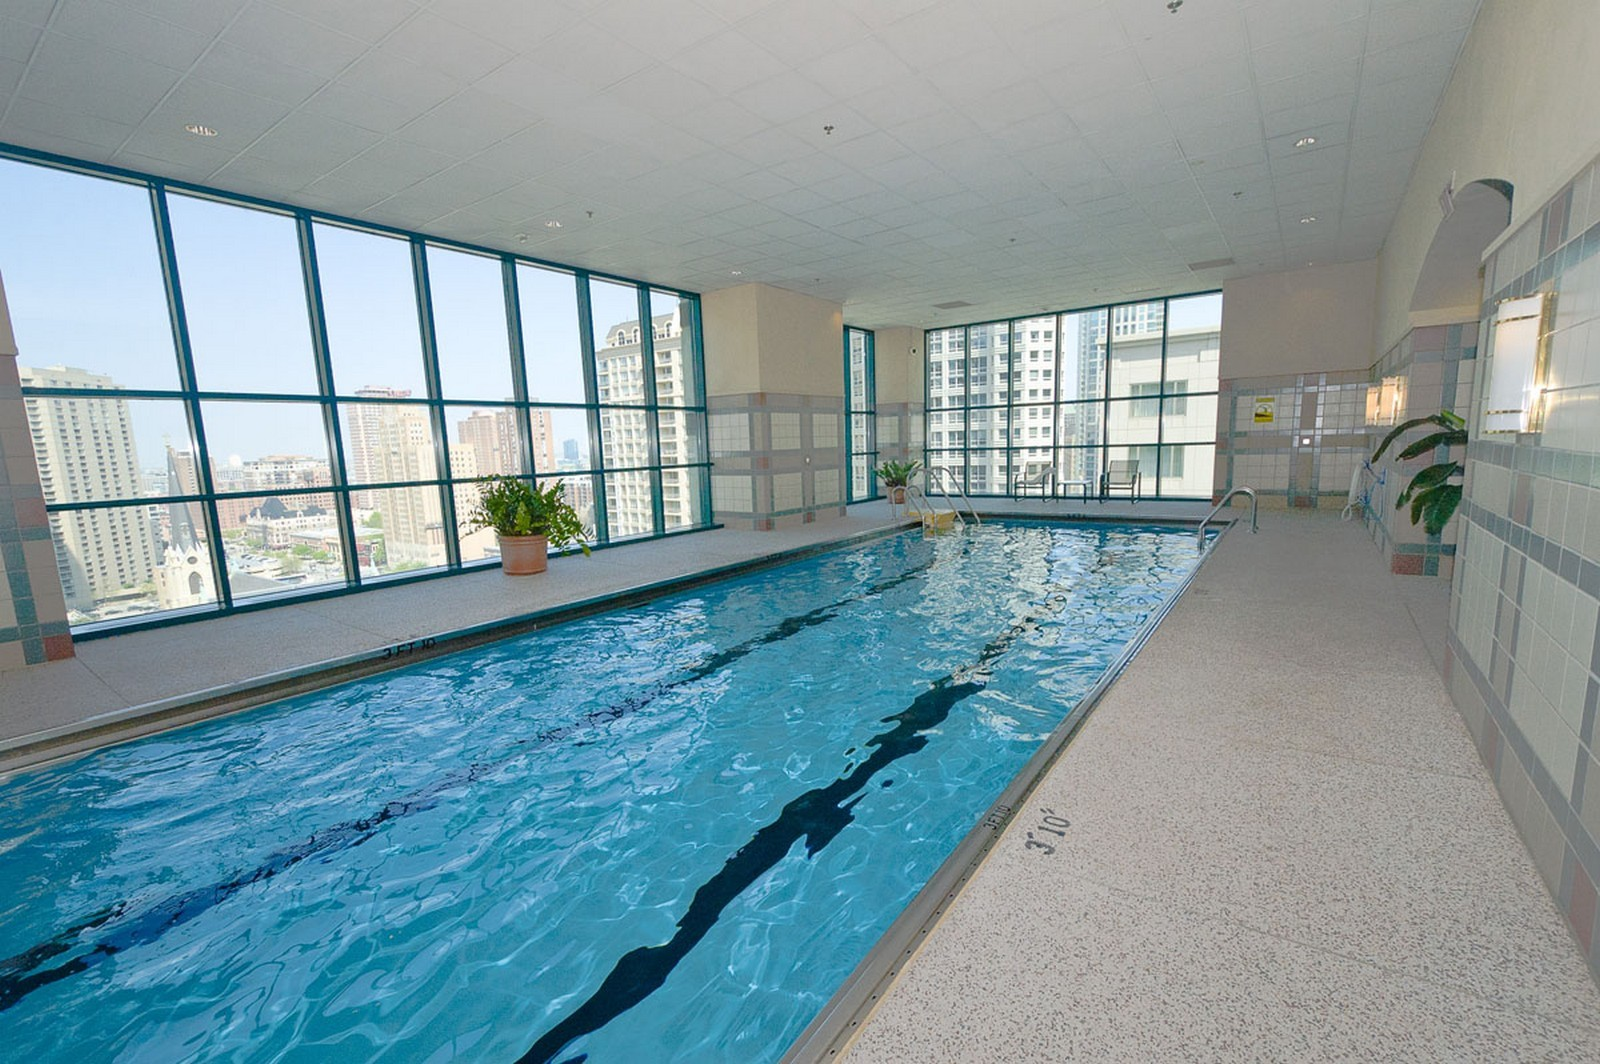 Real Estate Photography - 100 E Huron St, Apt 4201, Chicago, IL, 60611 - Indoor Pool